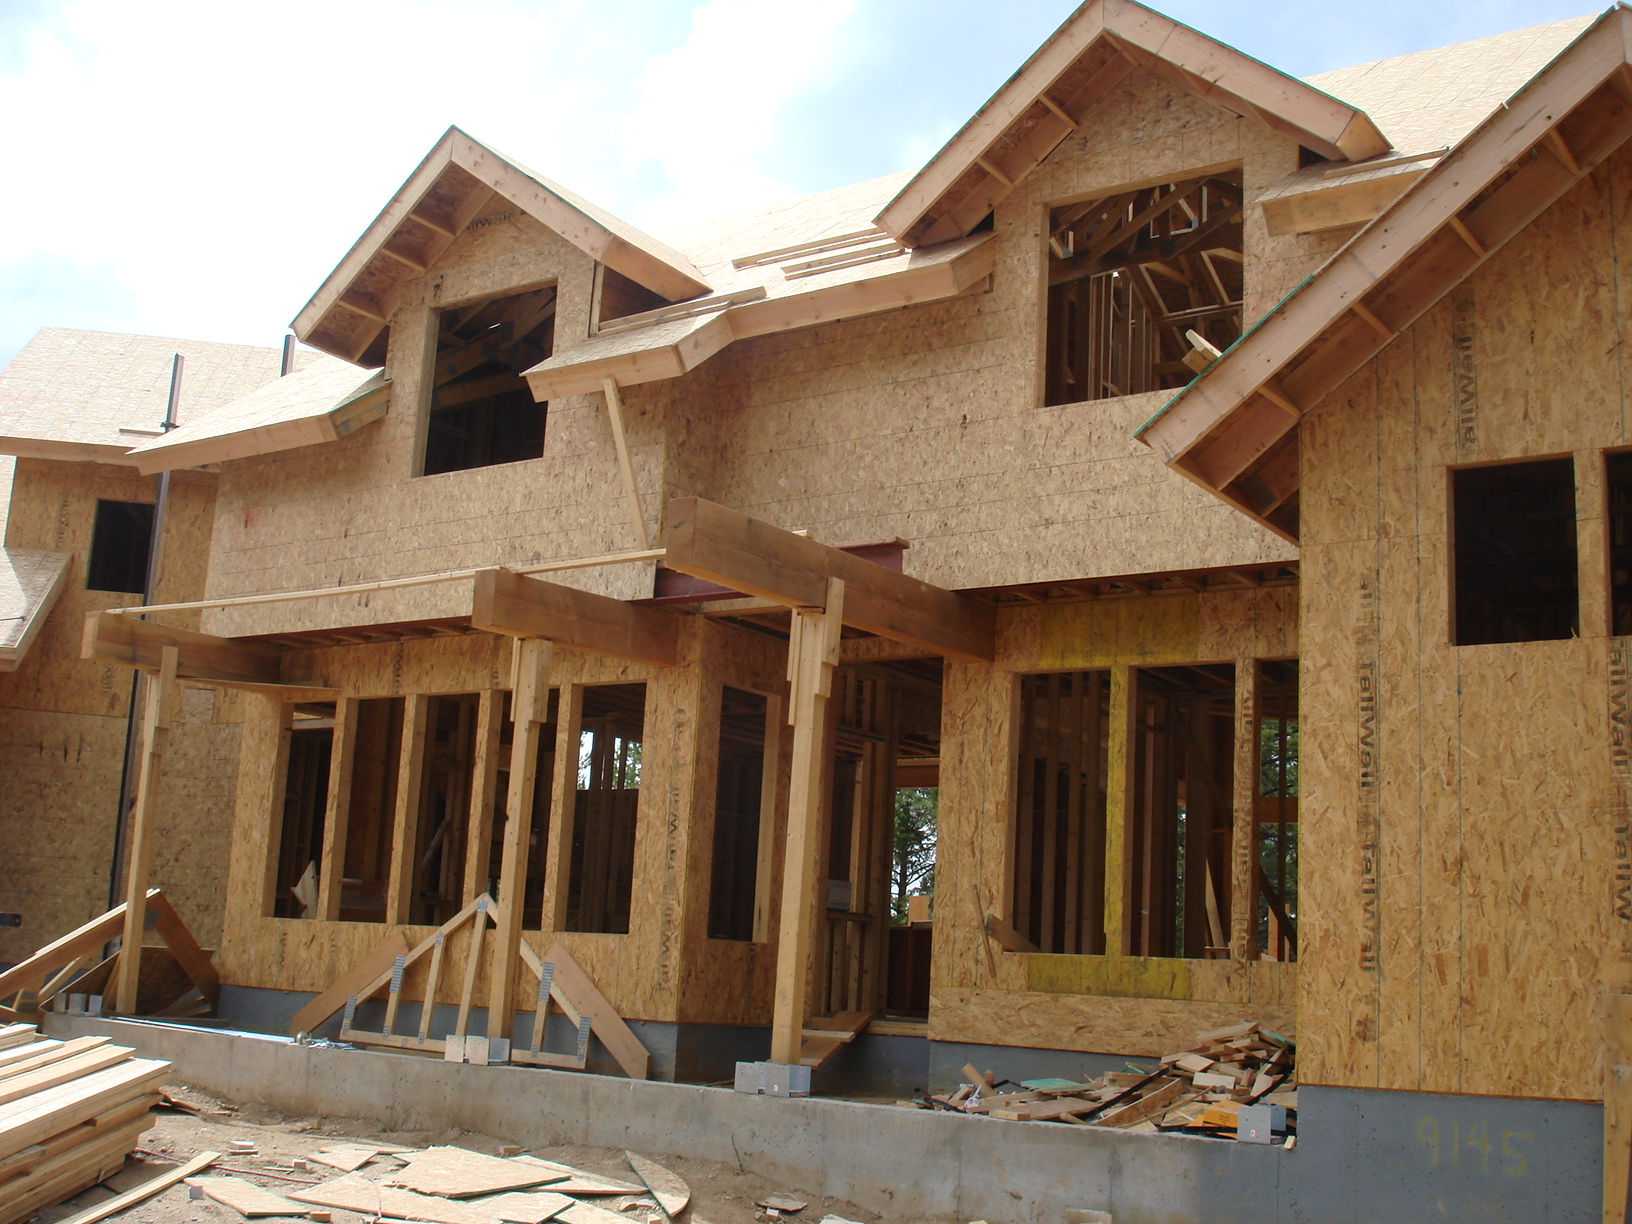 Osb lapok osb abh system kft for Exterior wall sheathing types